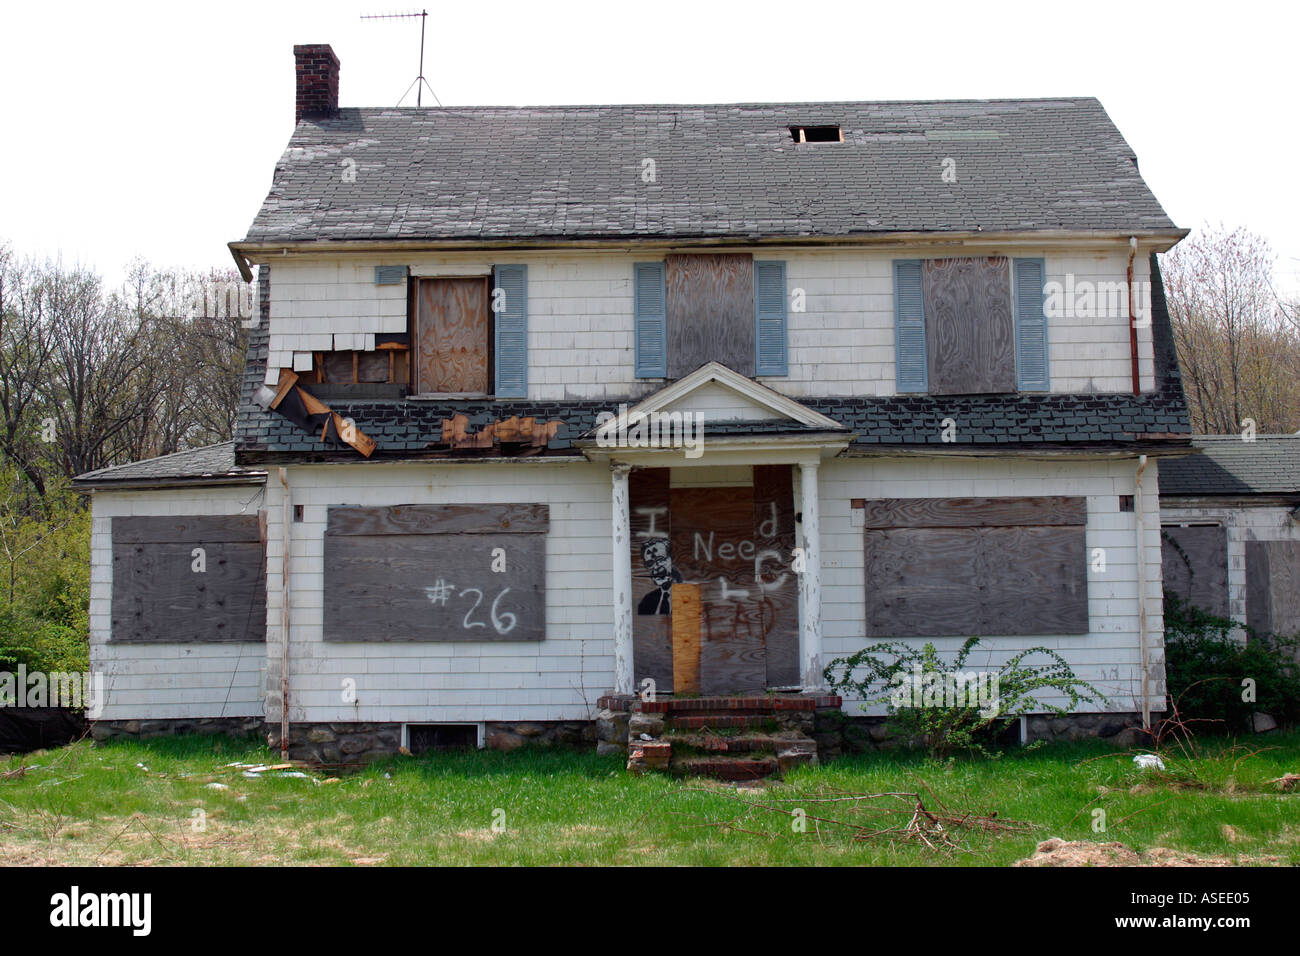 abandoned home - Stock Image